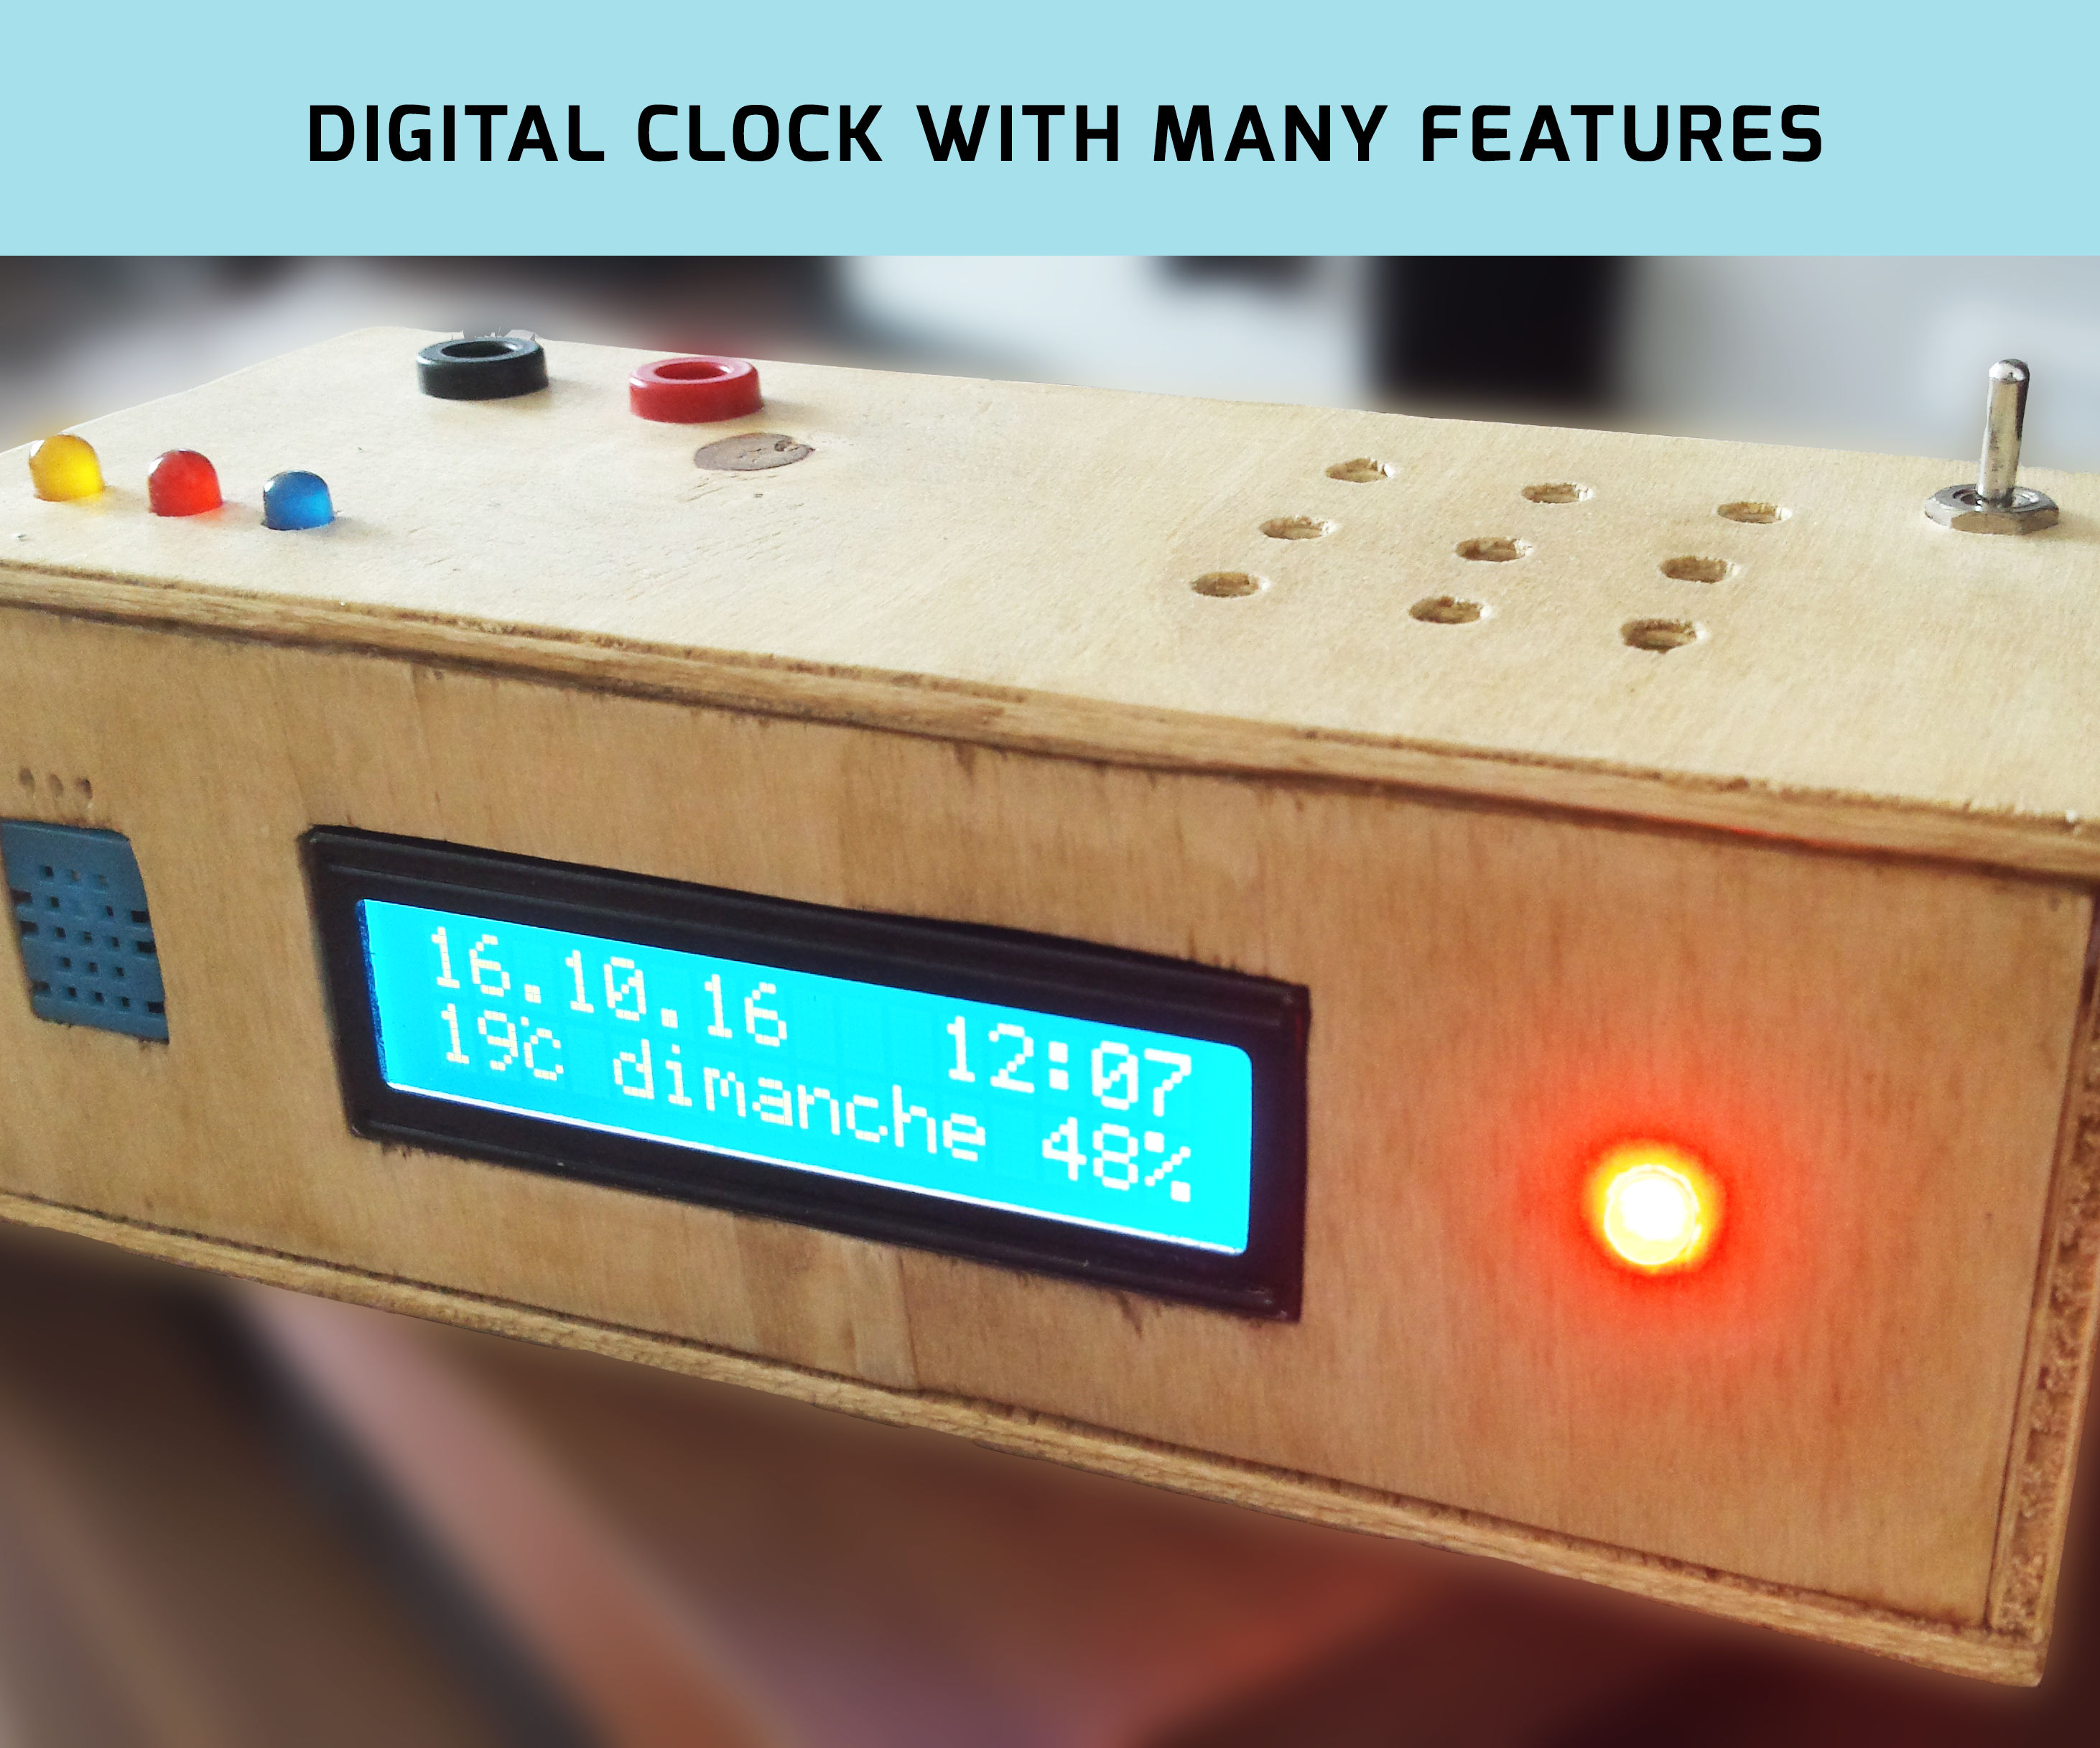 Digital Clock with many features